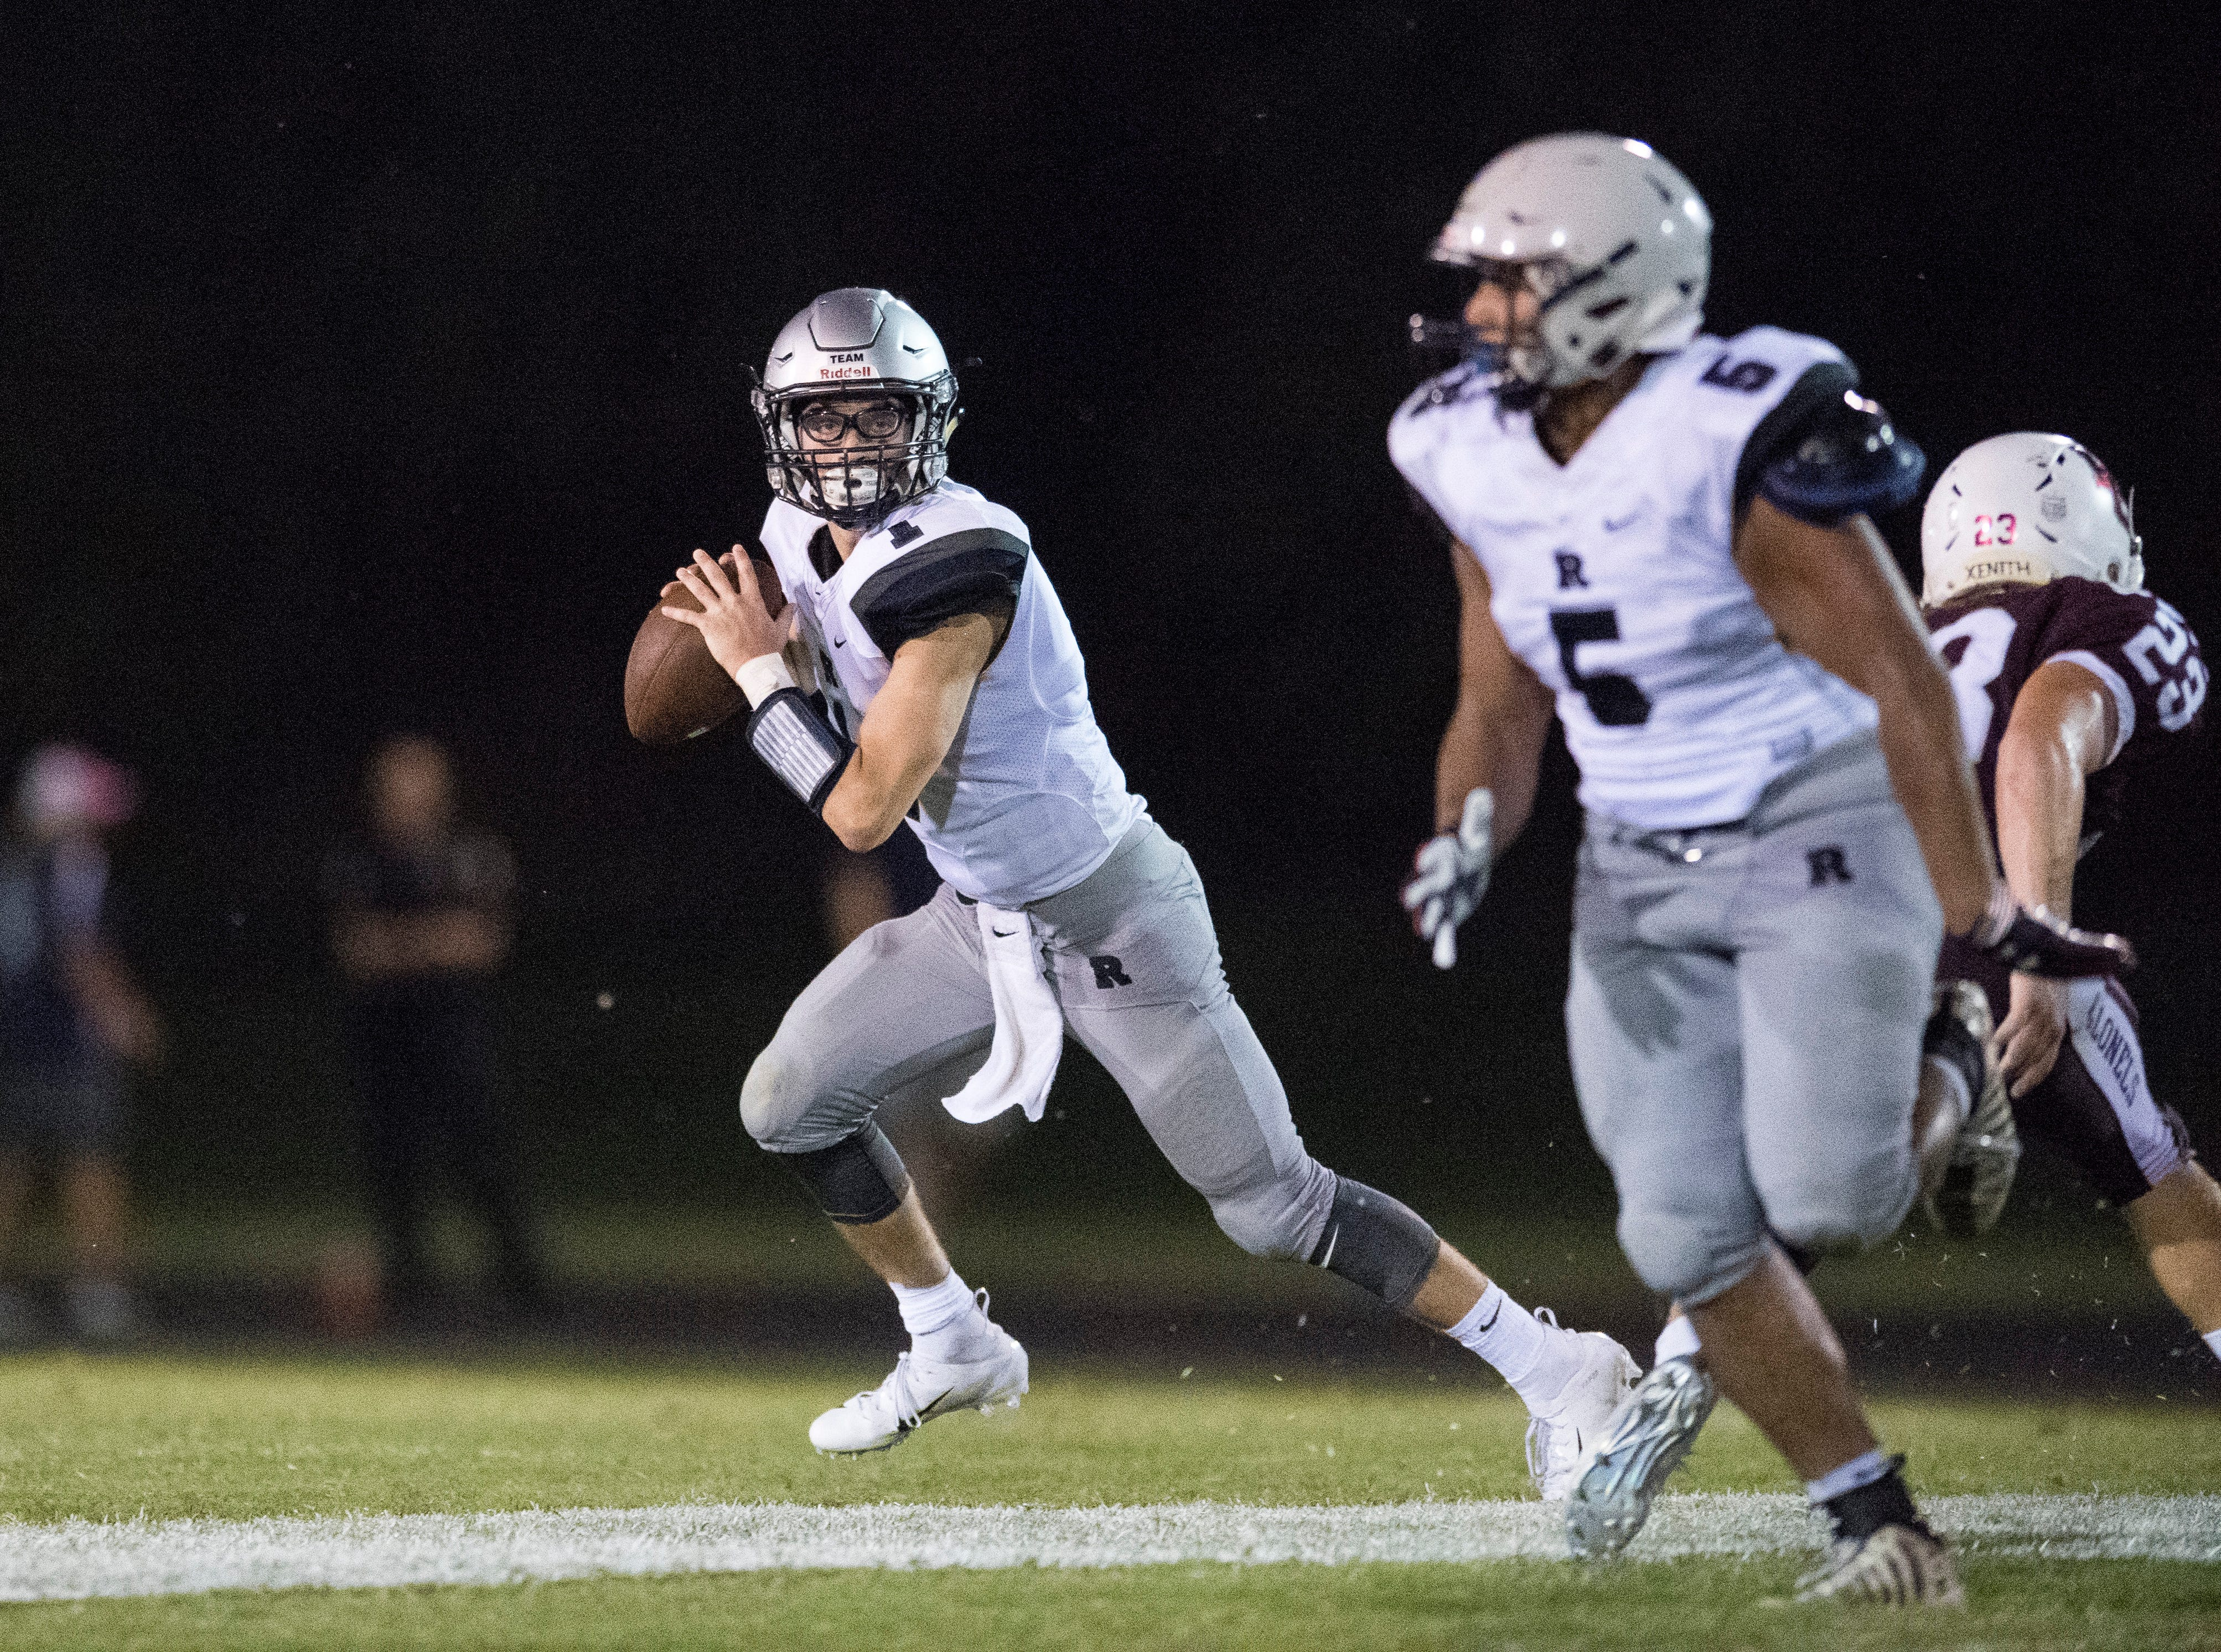 Reitz's Quarterback Eli Wiethop (1) looks for an open man during the Reitz vs Henderson County game at Colonel Stadium Friday, August 17, 2018. The Panthers defeated the Colonels 41-35 in the season opening game.